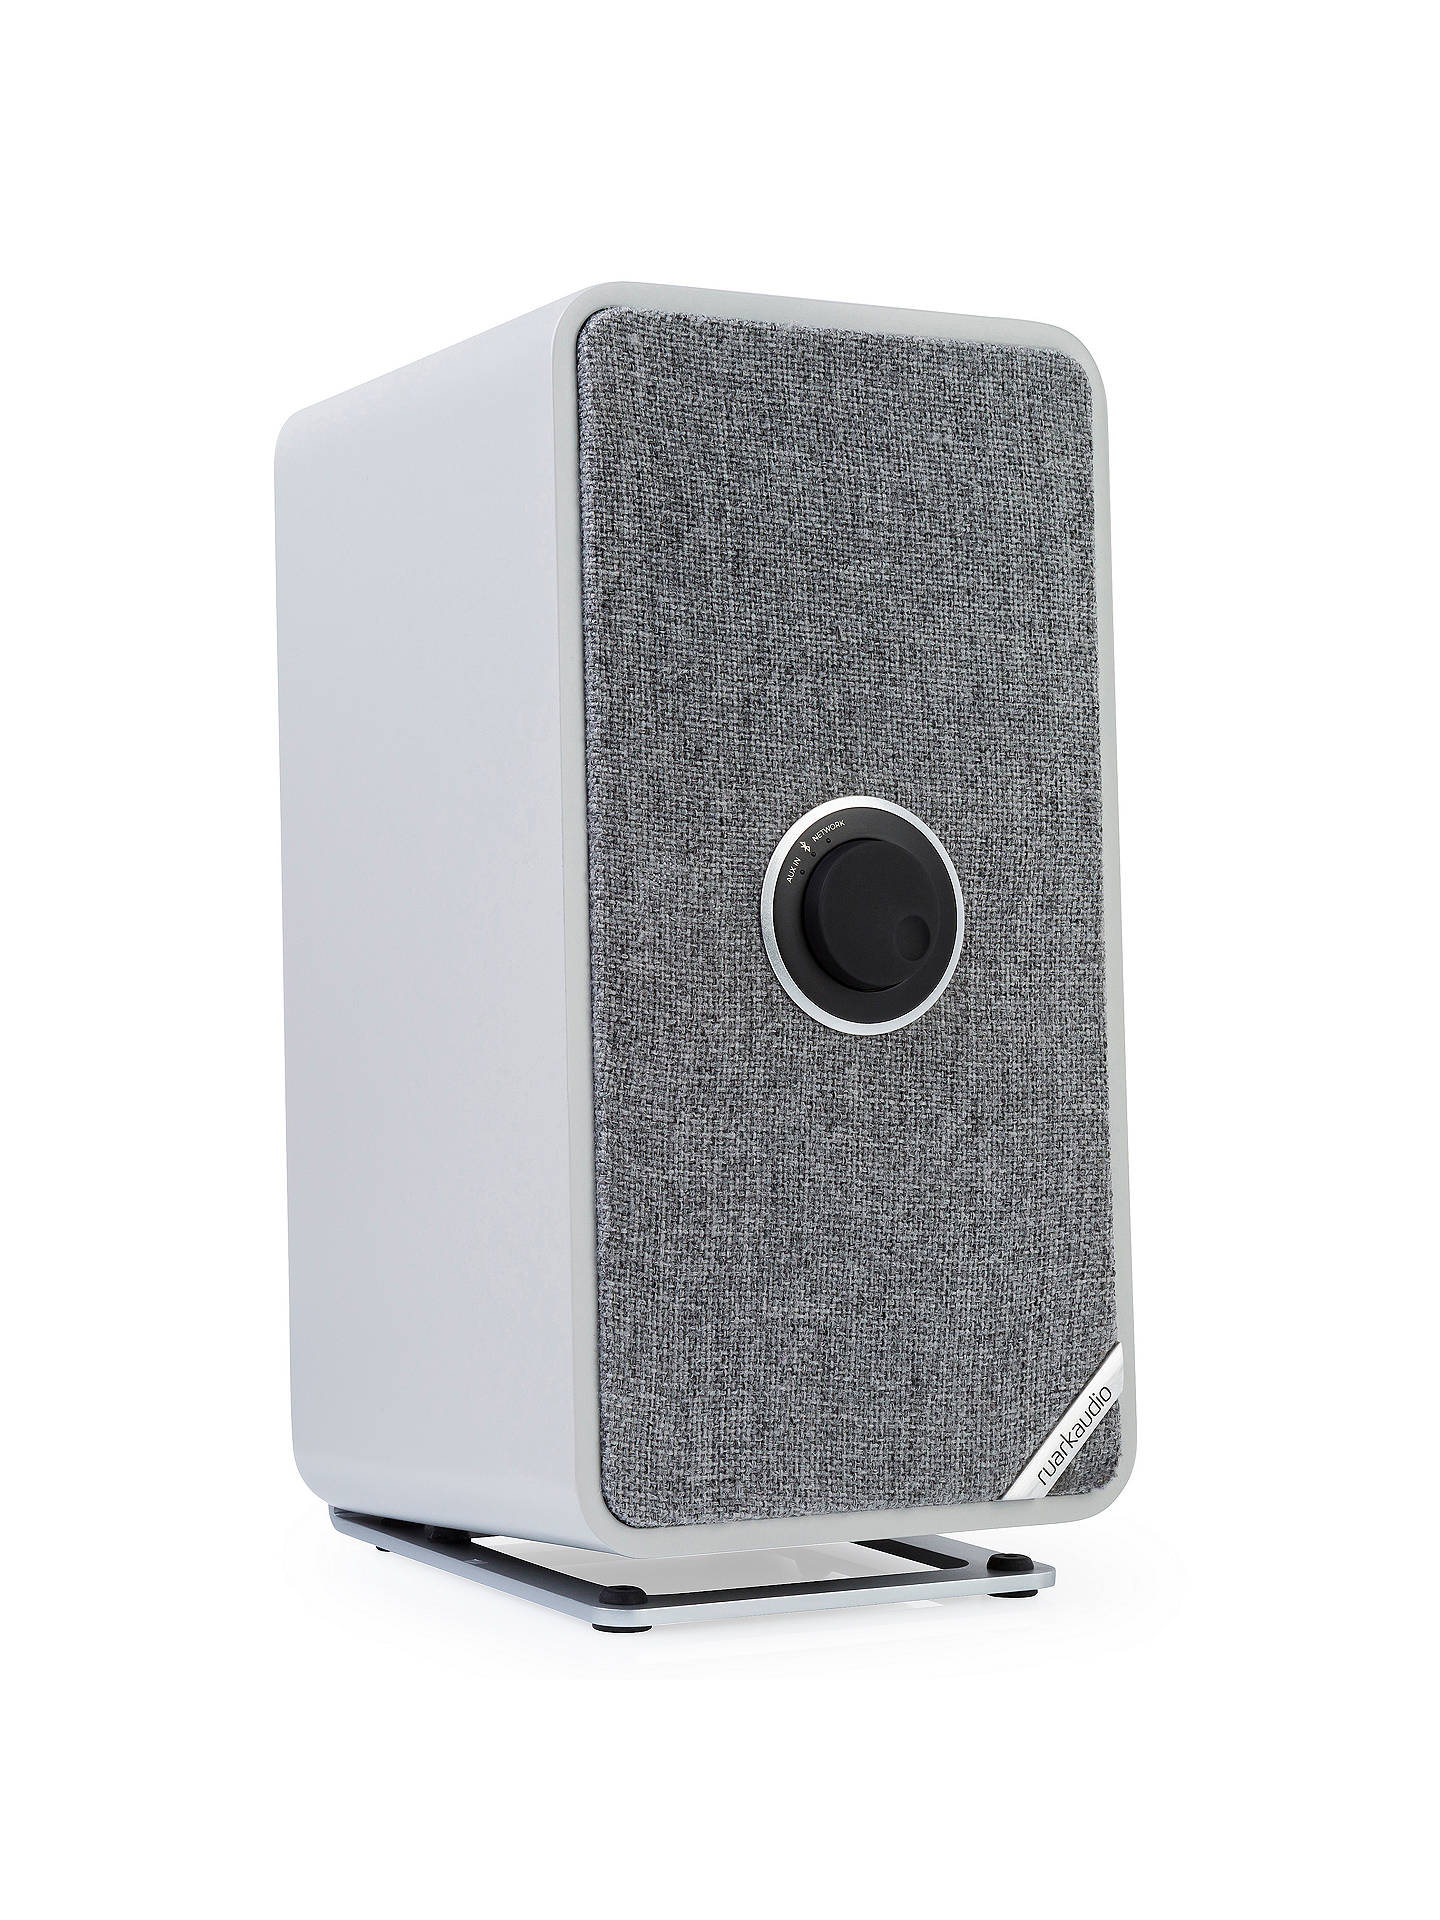 BuyRuark MRx Bluetooth Wi-Fi Connected Wireless Speaker, Soft Grey Online at johnlewis.com